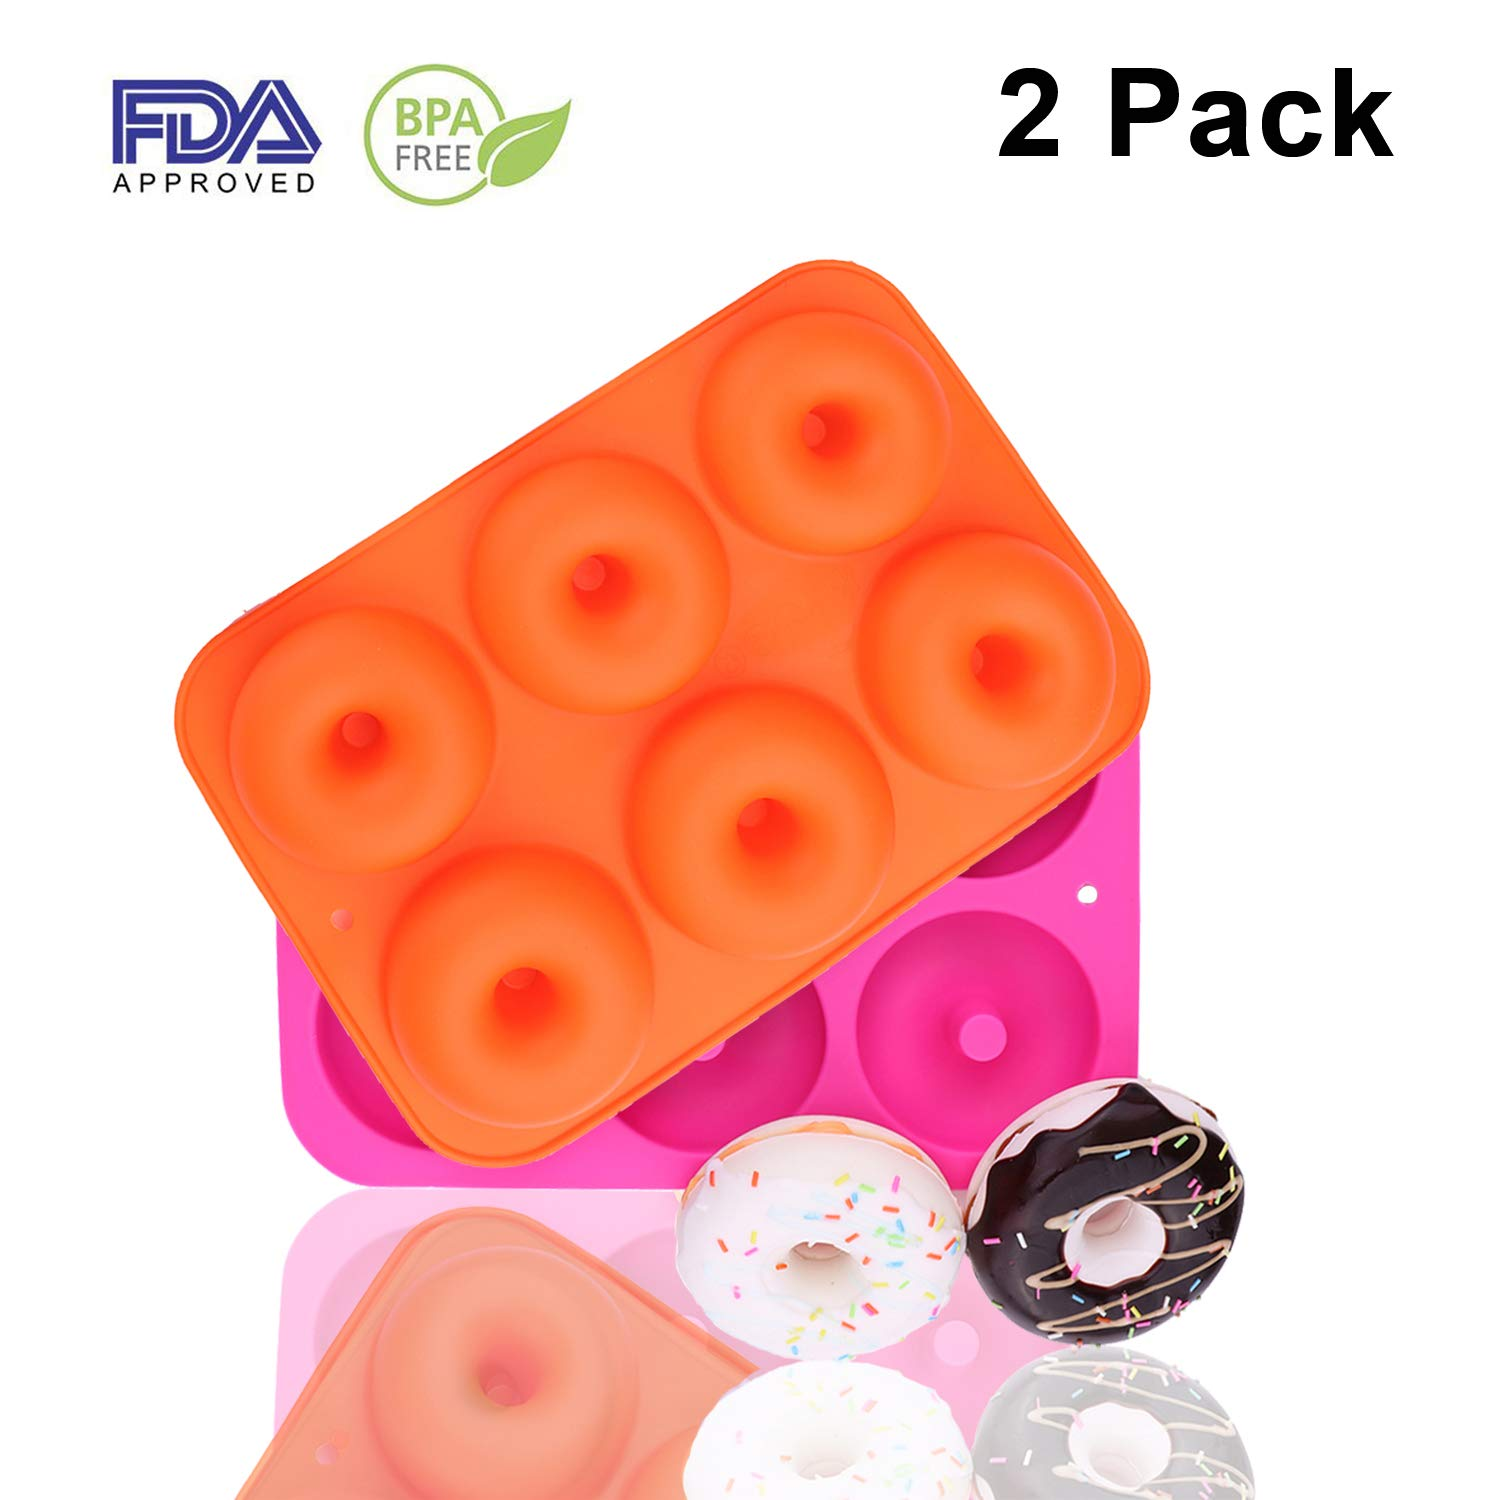 Messar 2-Pack Donut Pan Set, Silicone Doughnuts Tin Safe Baking Tray Maker Pan, Non-Stick Cake Mold, Easy to Bake Full Size Perfect Shaped Donuts to Sweeten Your Hole Day (Orange & Rose red)